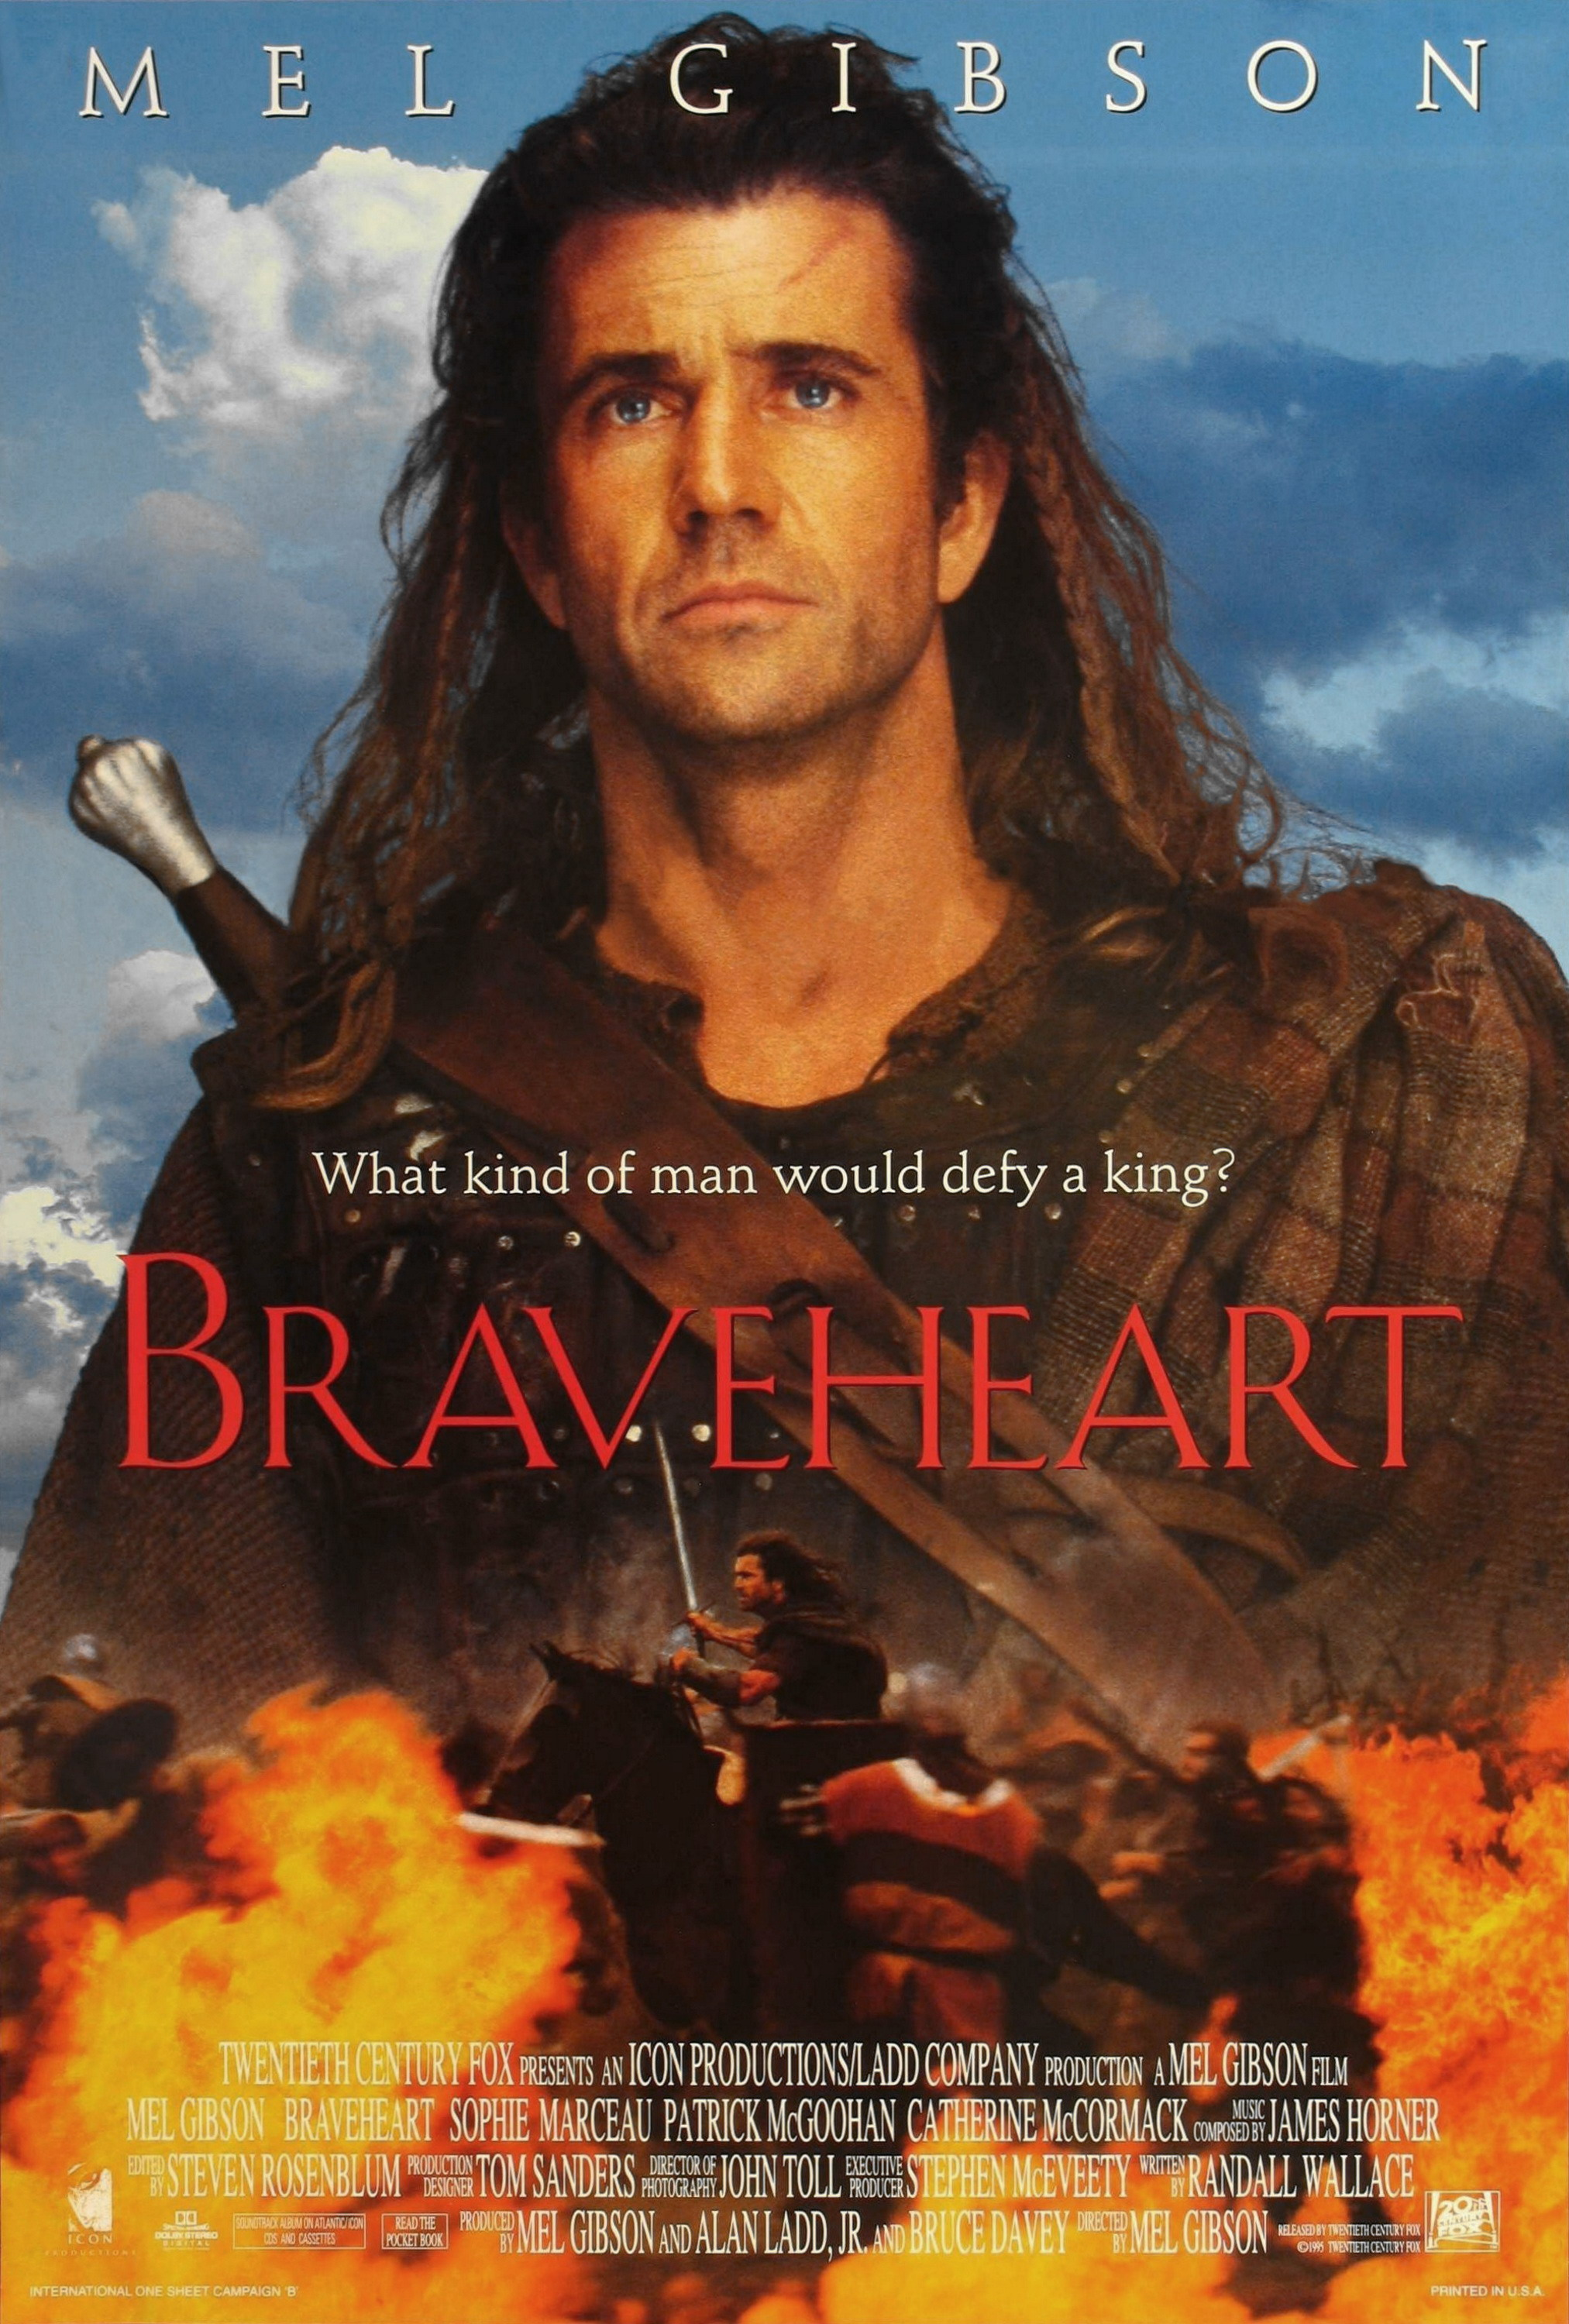 braveheart9502 Braveheart Turns 25: The Bloody Pleasures of Mel Gibsons Moral Universe